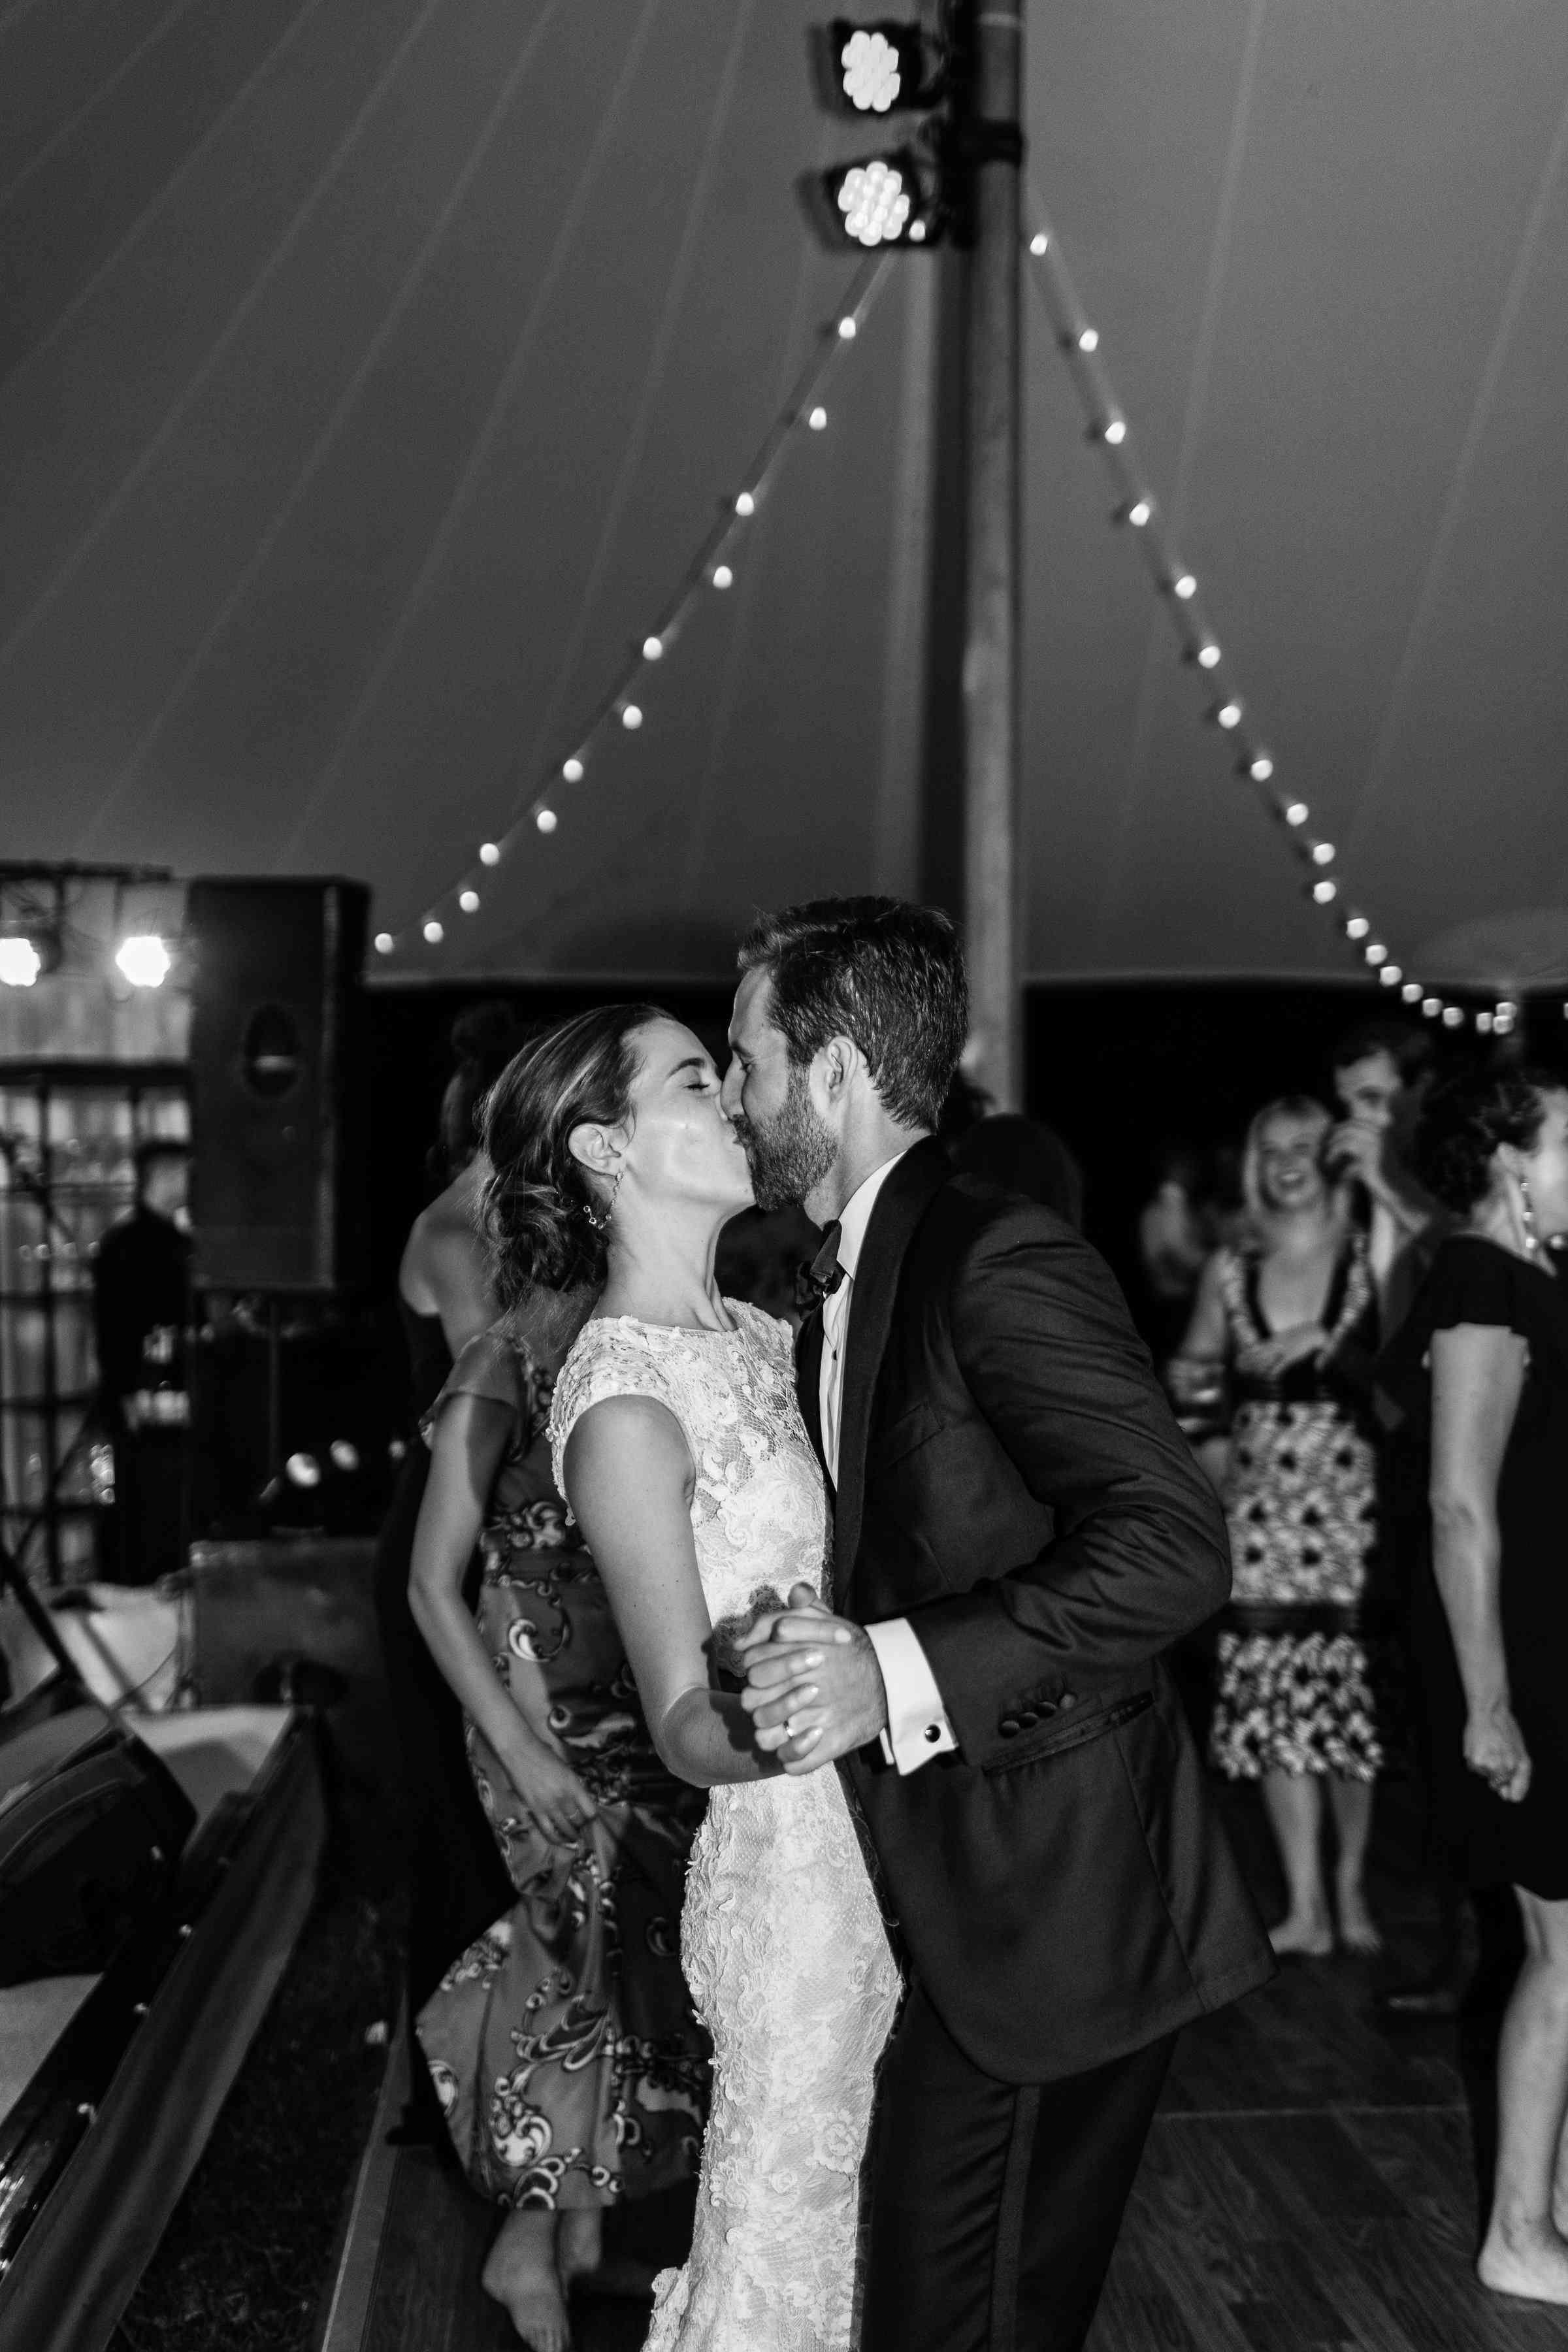 <p>Bride and Groom kissing during dance</p><br><br>